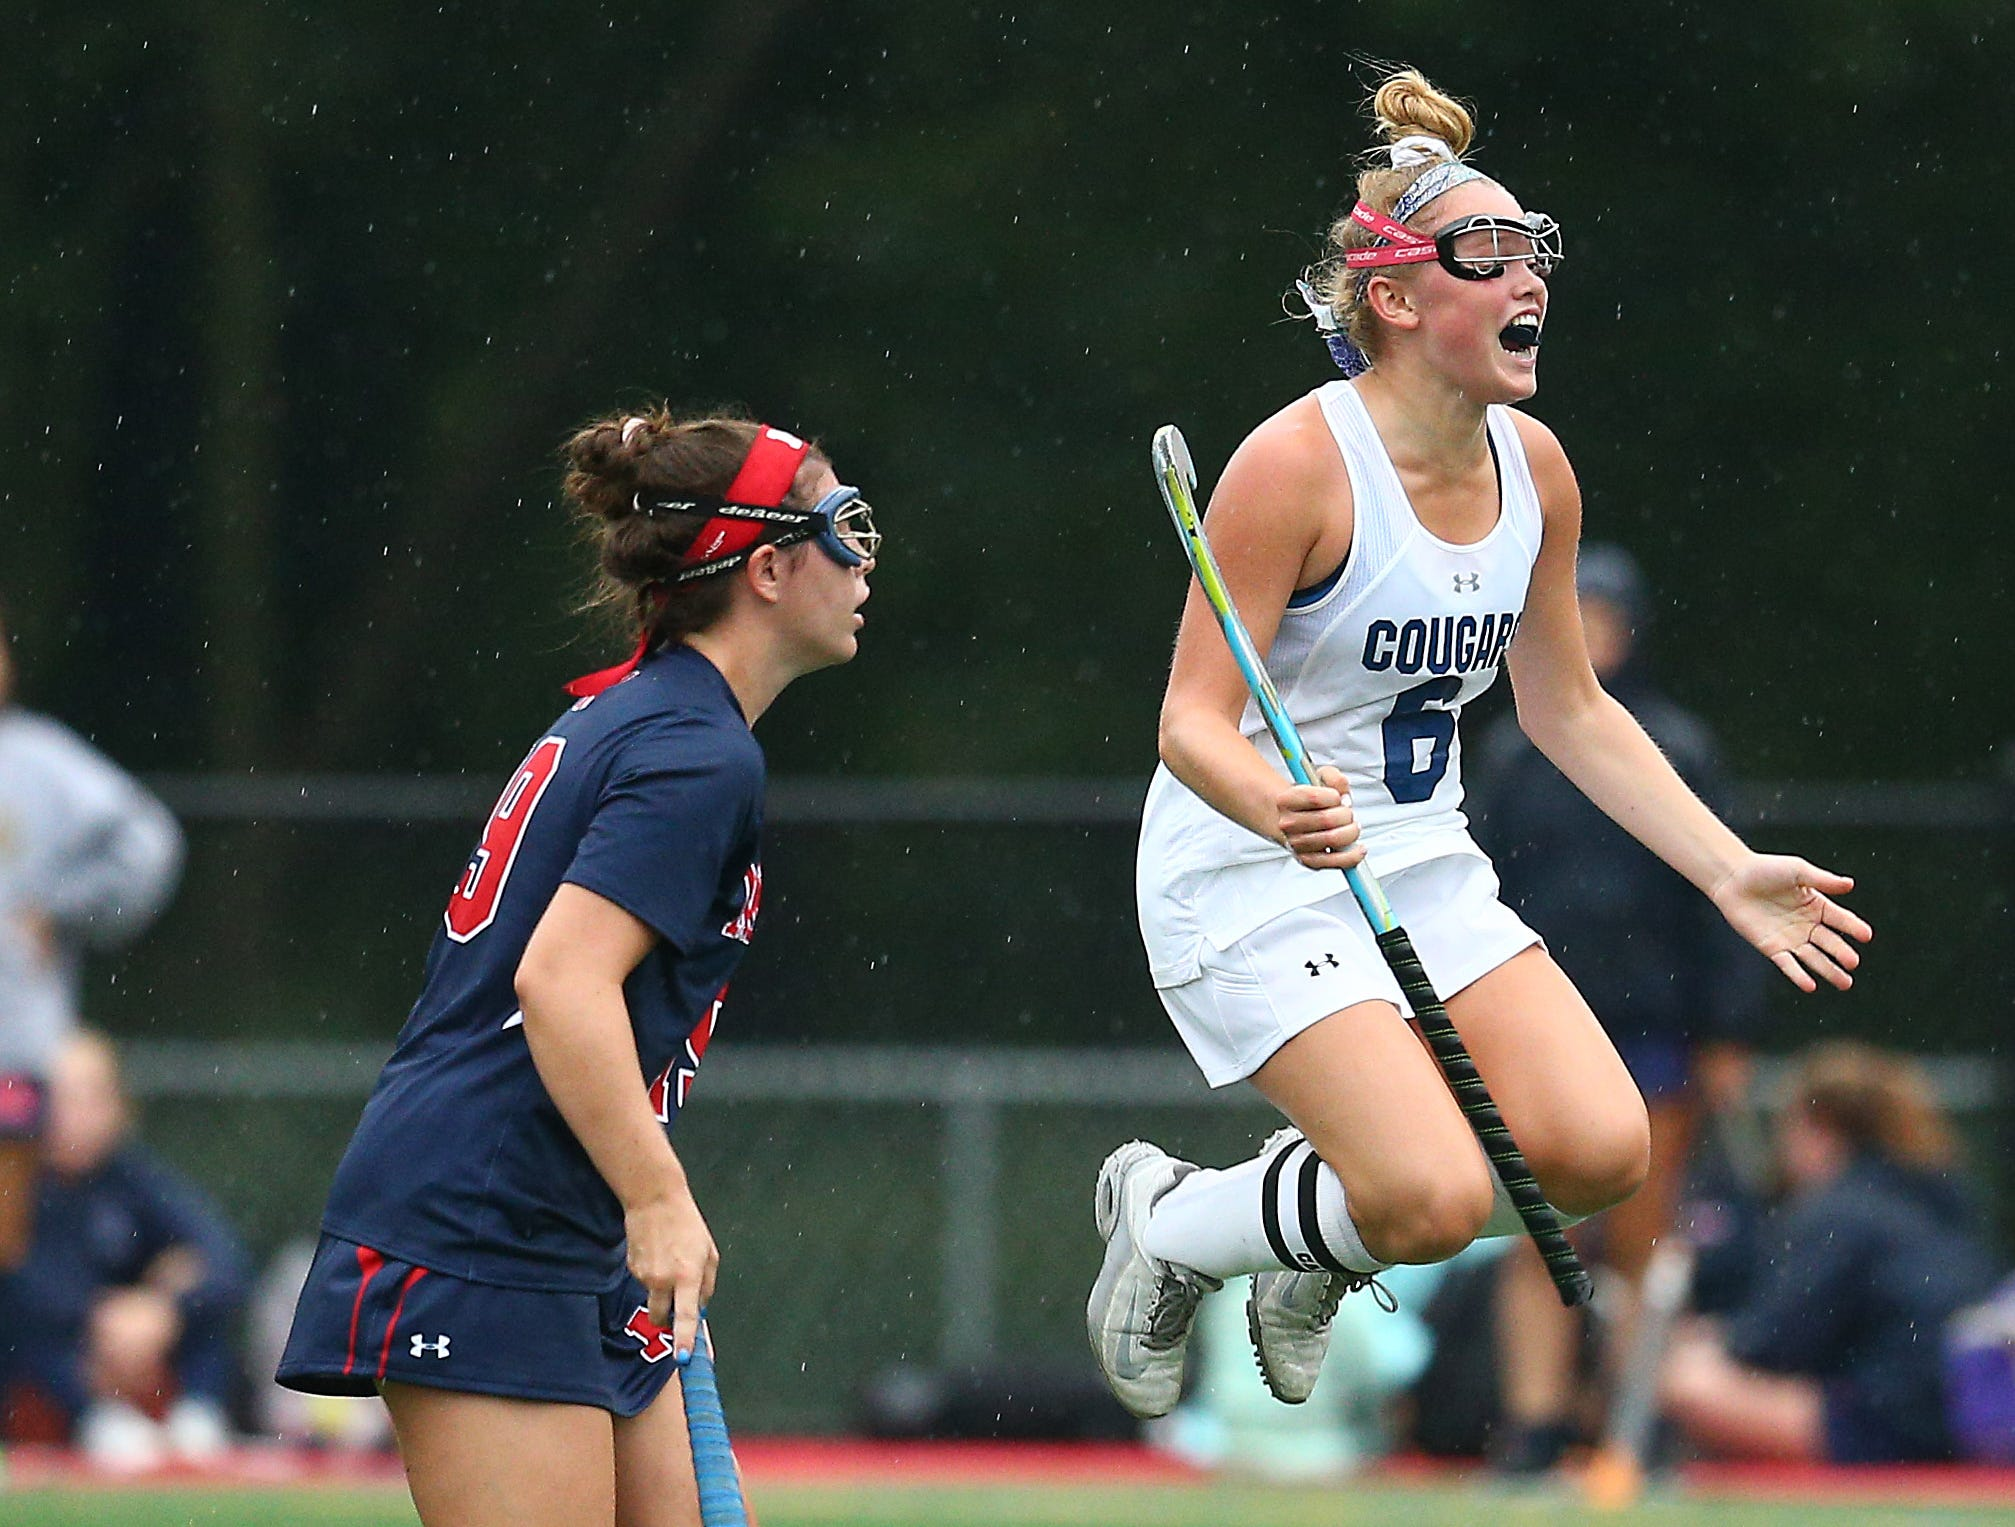 Chatham's Anne Leverich celebrates her first half goal vs. Mendham during their NJAC-American field hockey game at Haas Field in Chatham. September 12, 2018, Chatham, NJ